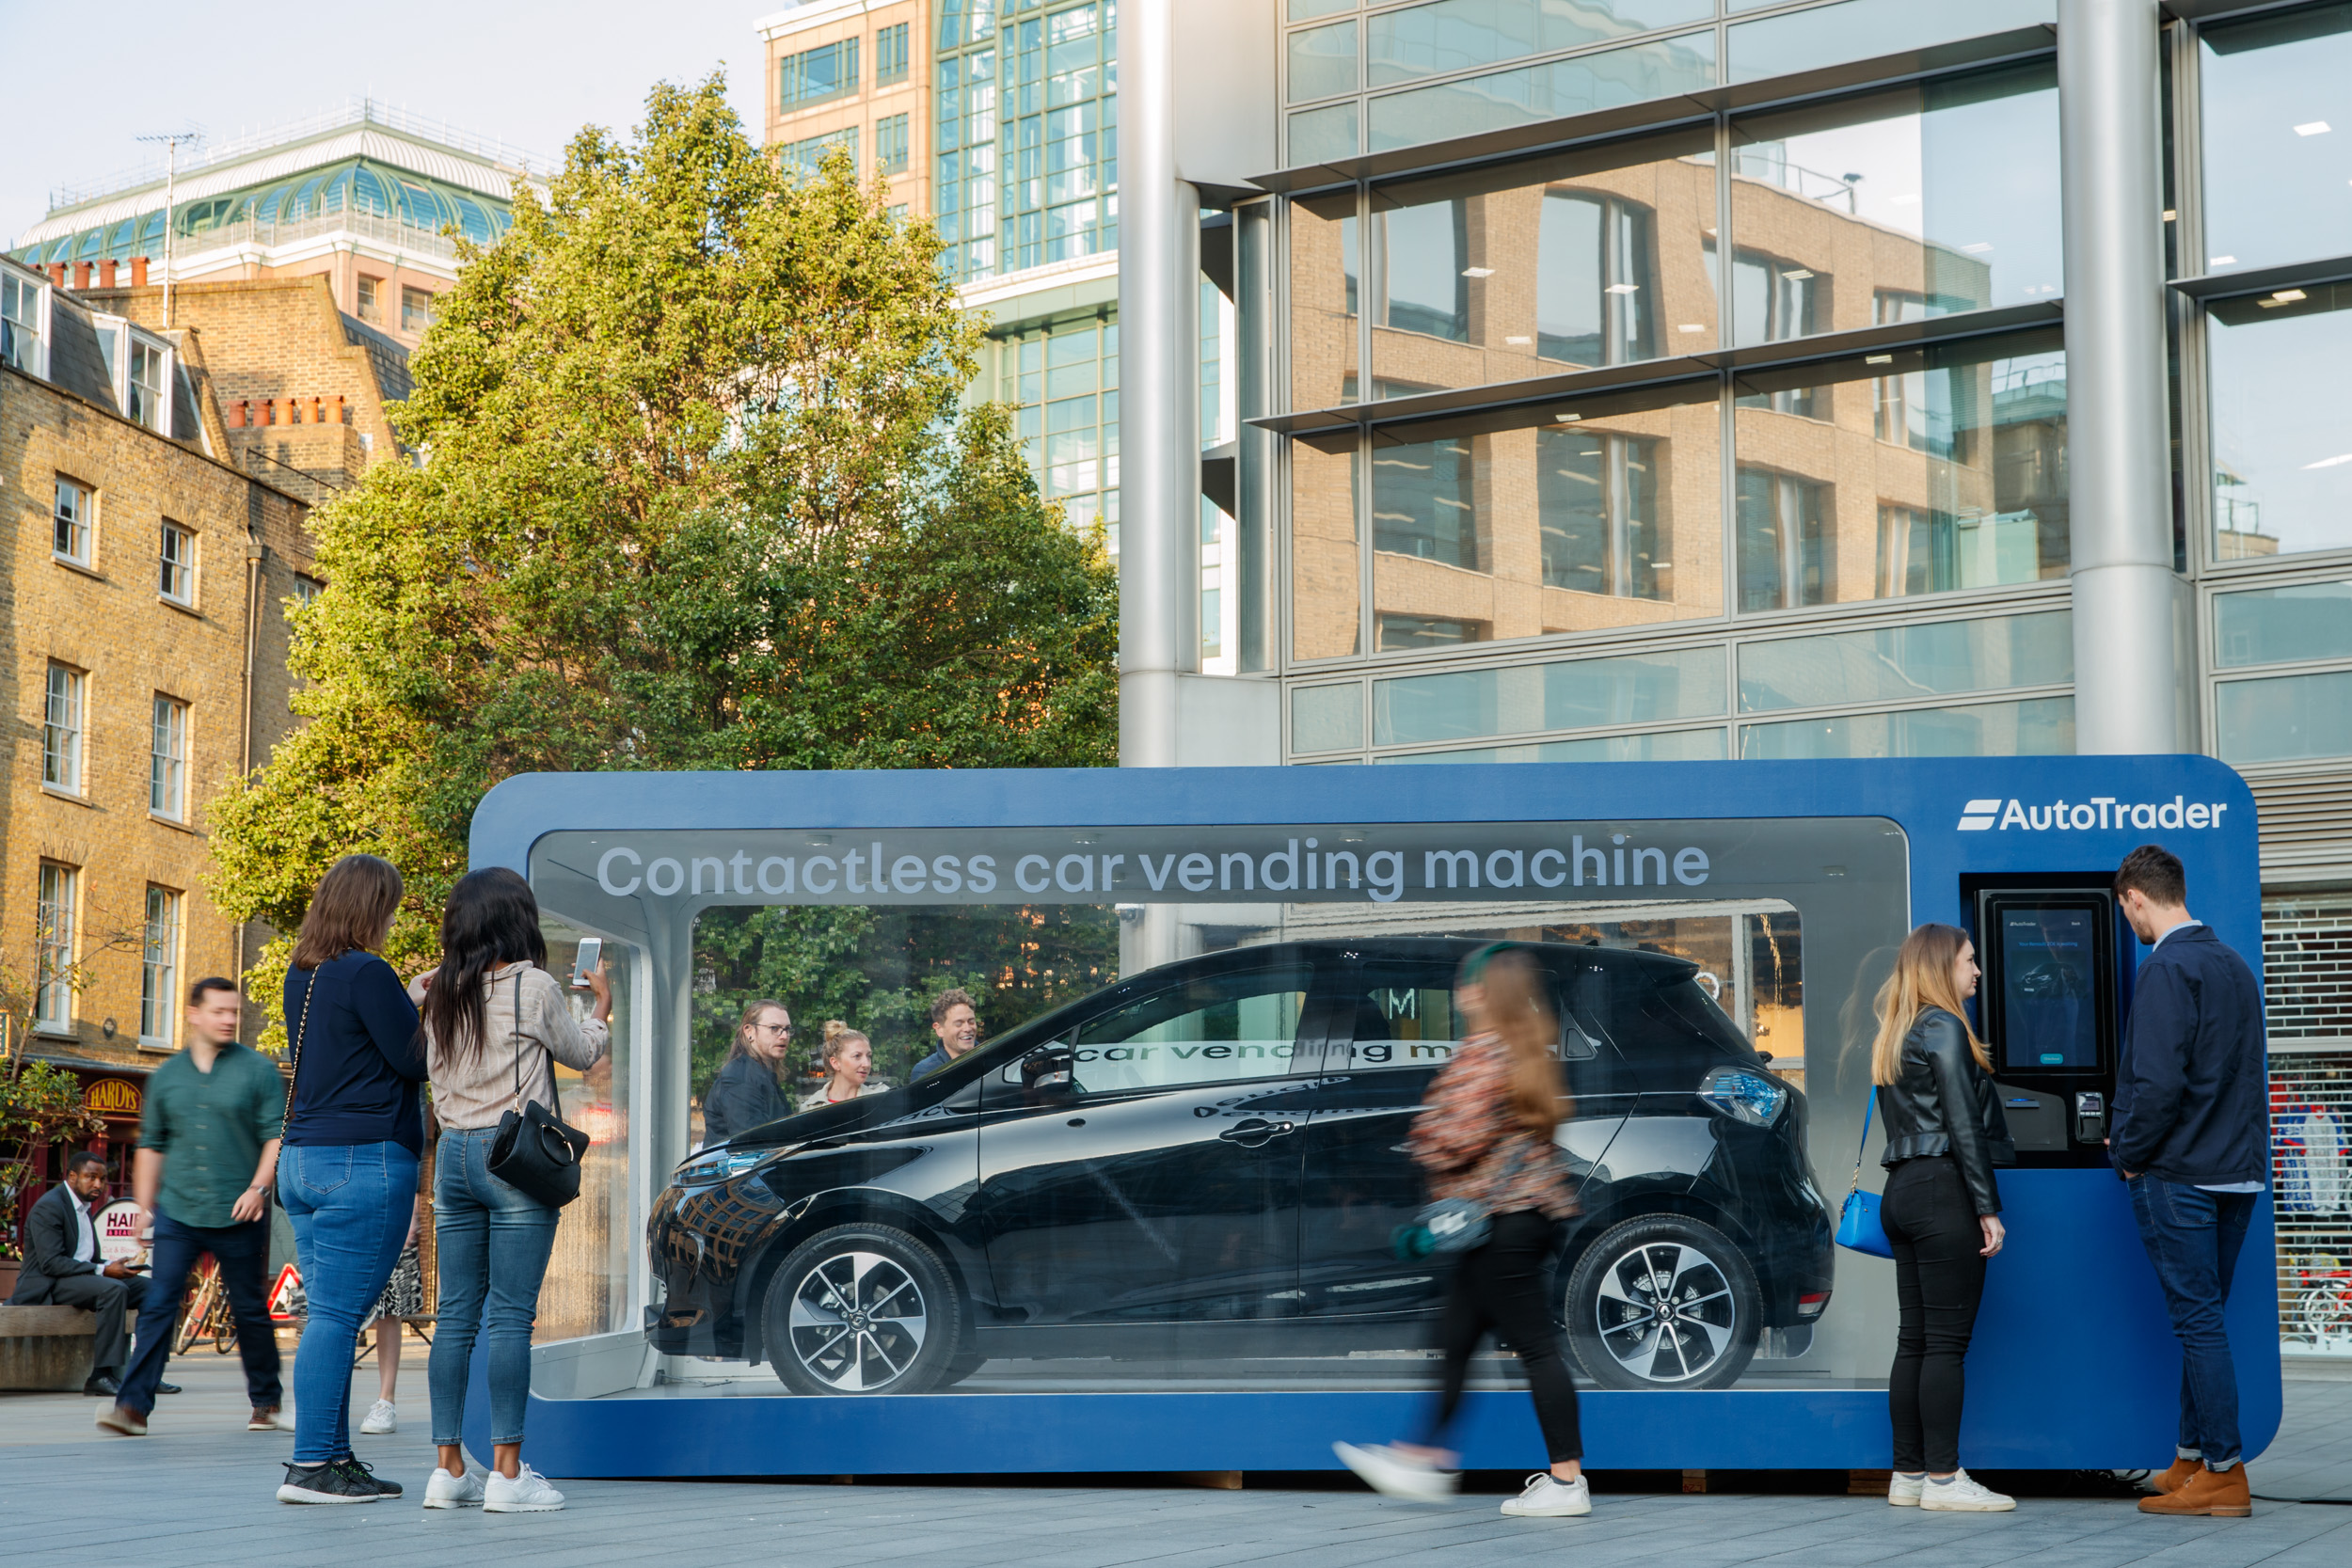 UK's first contactless car vending machine unveiled in London